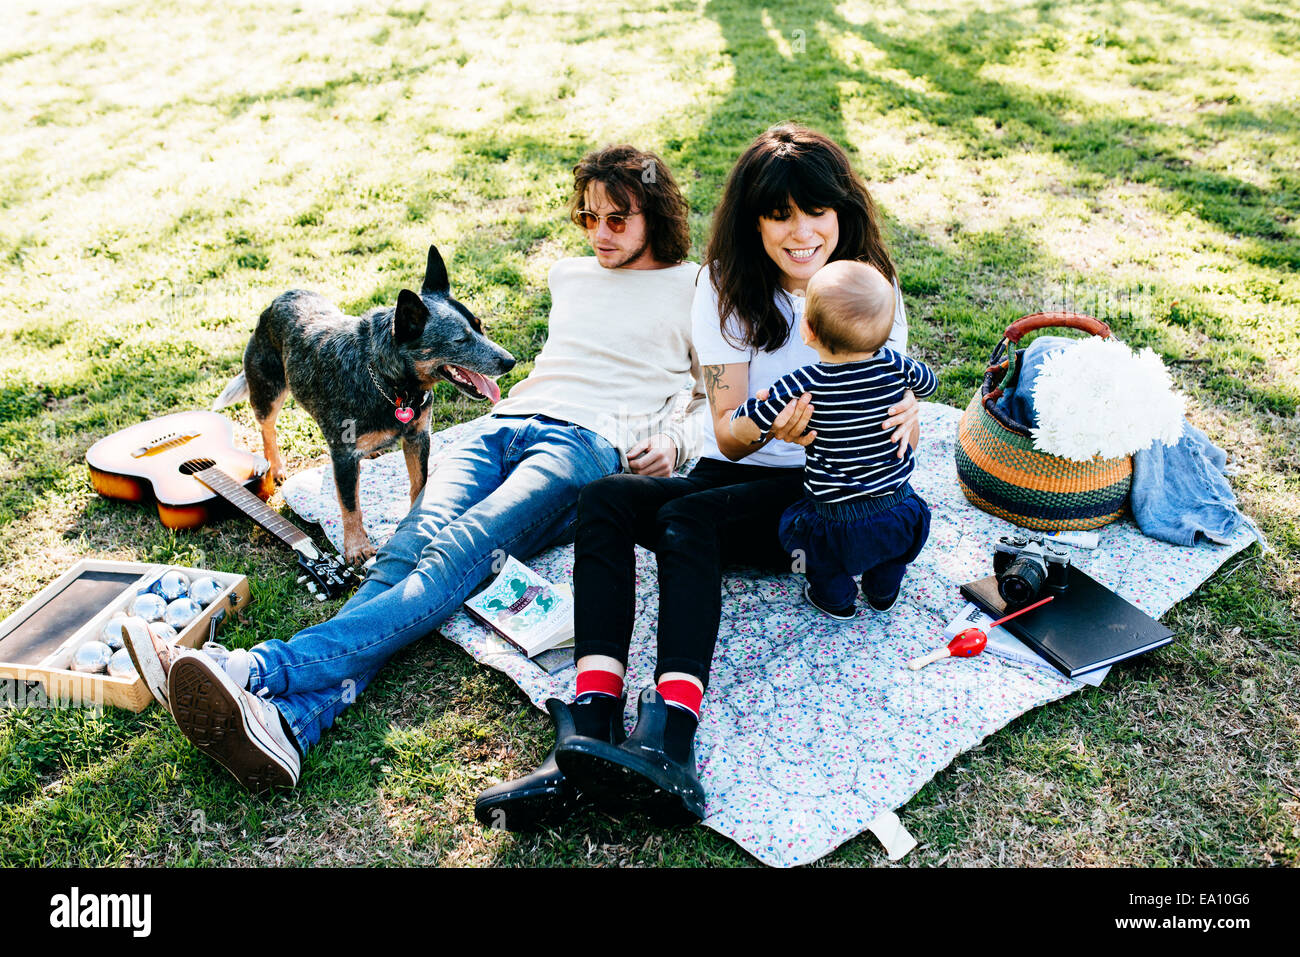 Couple with baby on picnic blanket in park - Stock Image